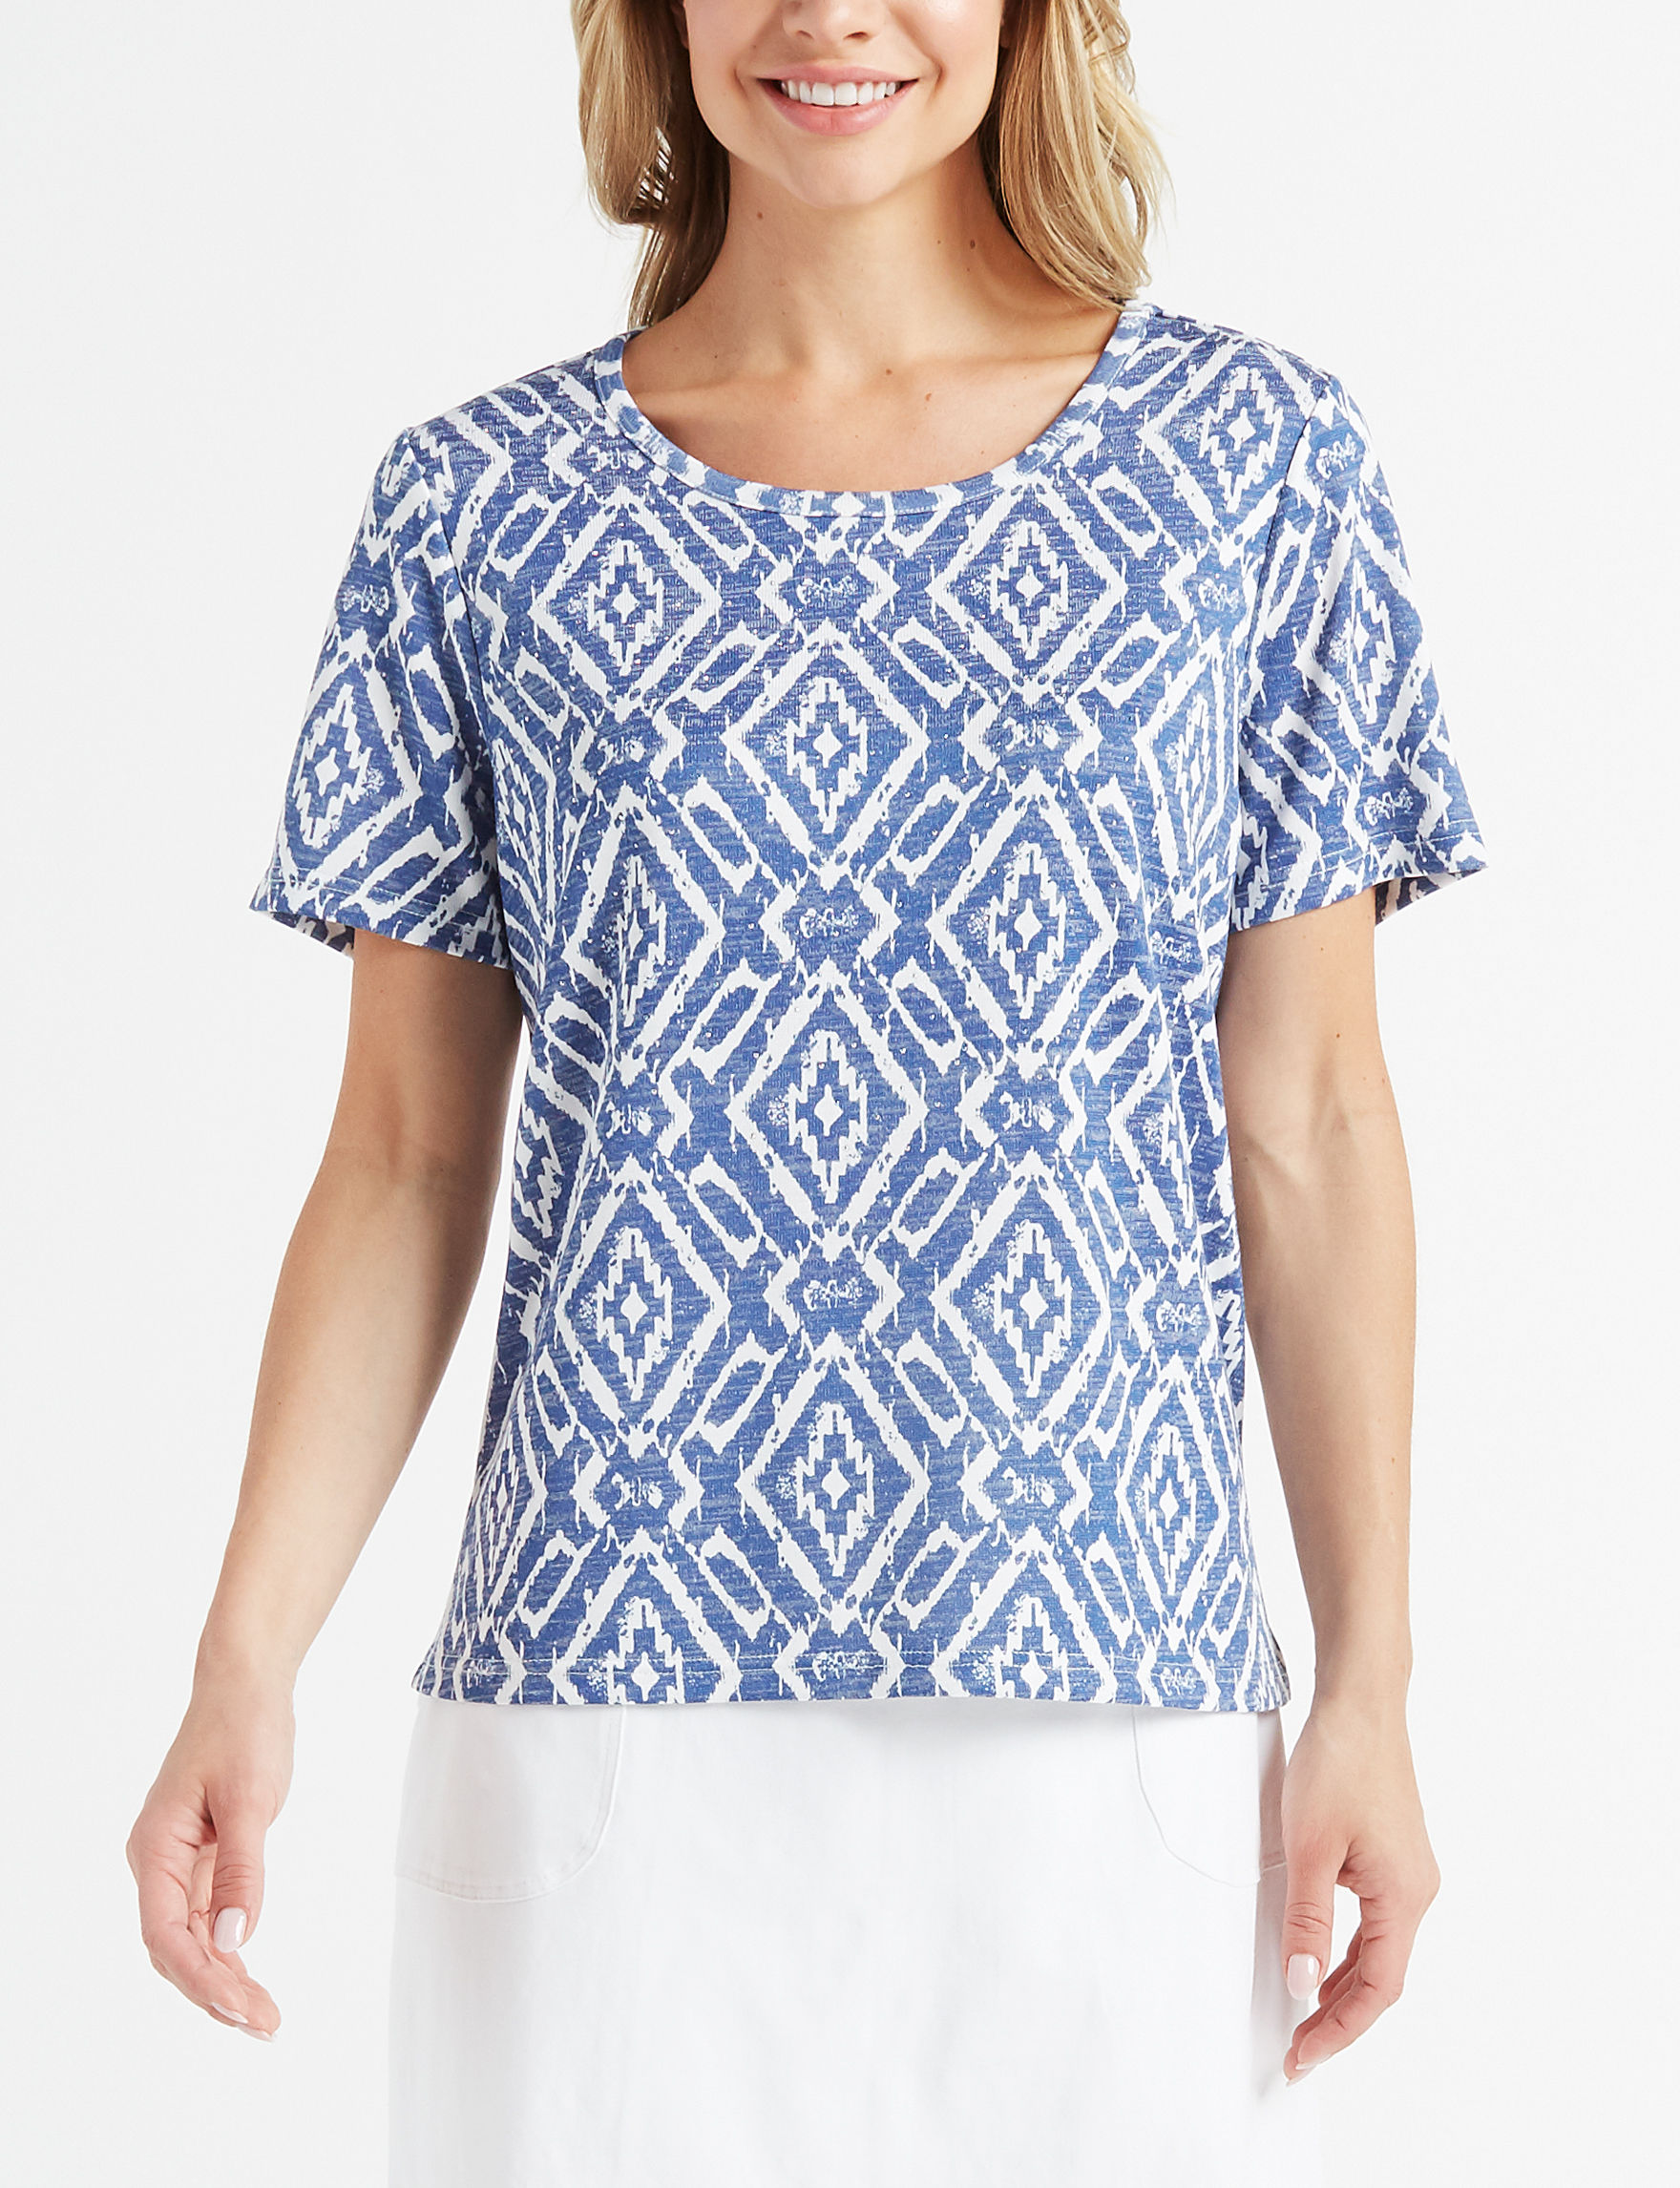 Cathy Daniels Navy / White Shirts & Blouses